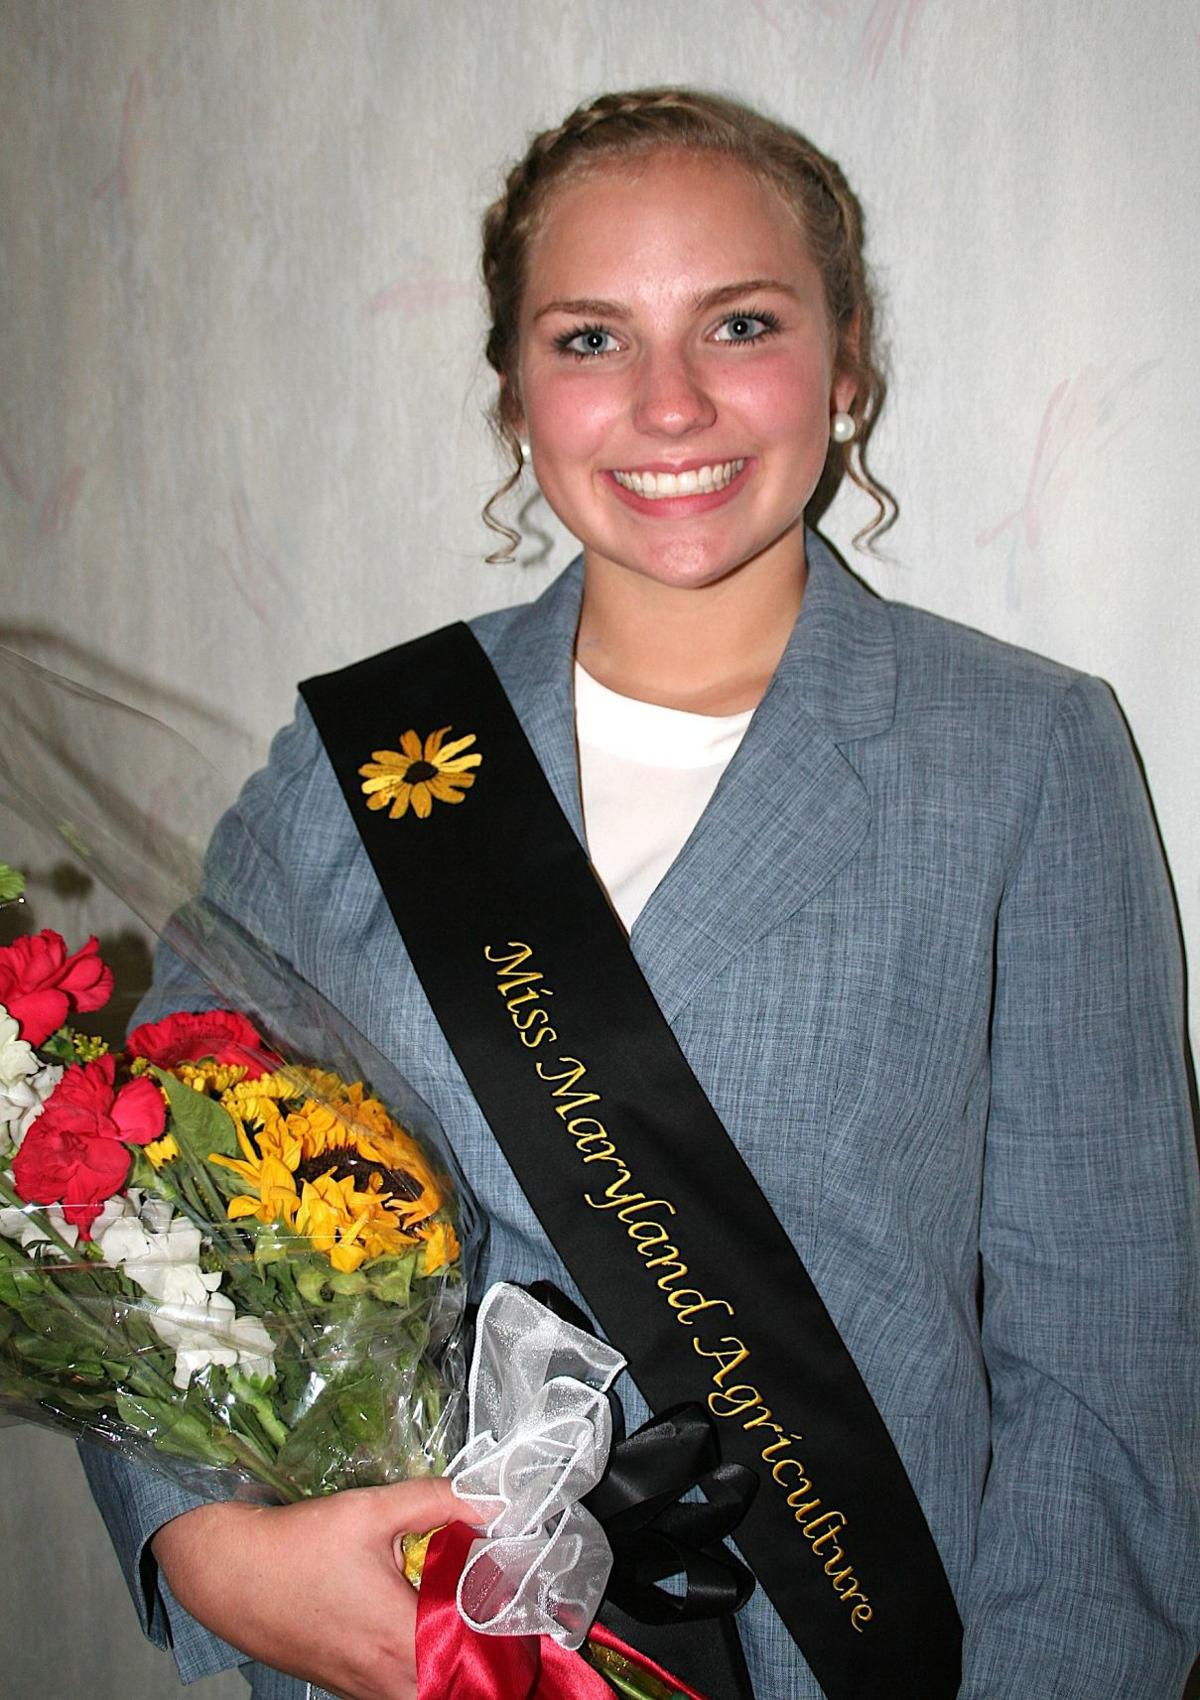 Miss Maryland Agriculture 2018 Bailey Riggs